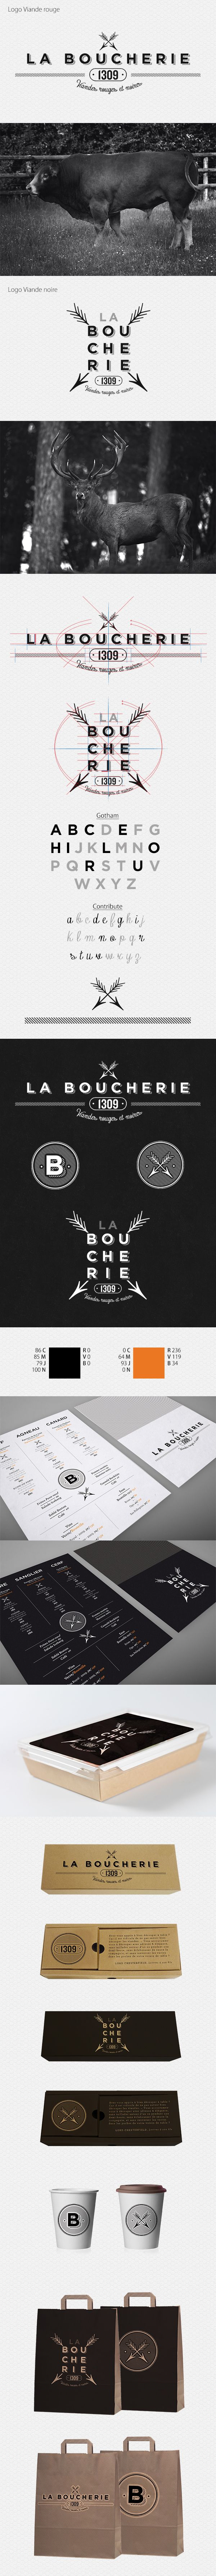 La Boucherie by TBTeam, via Behance